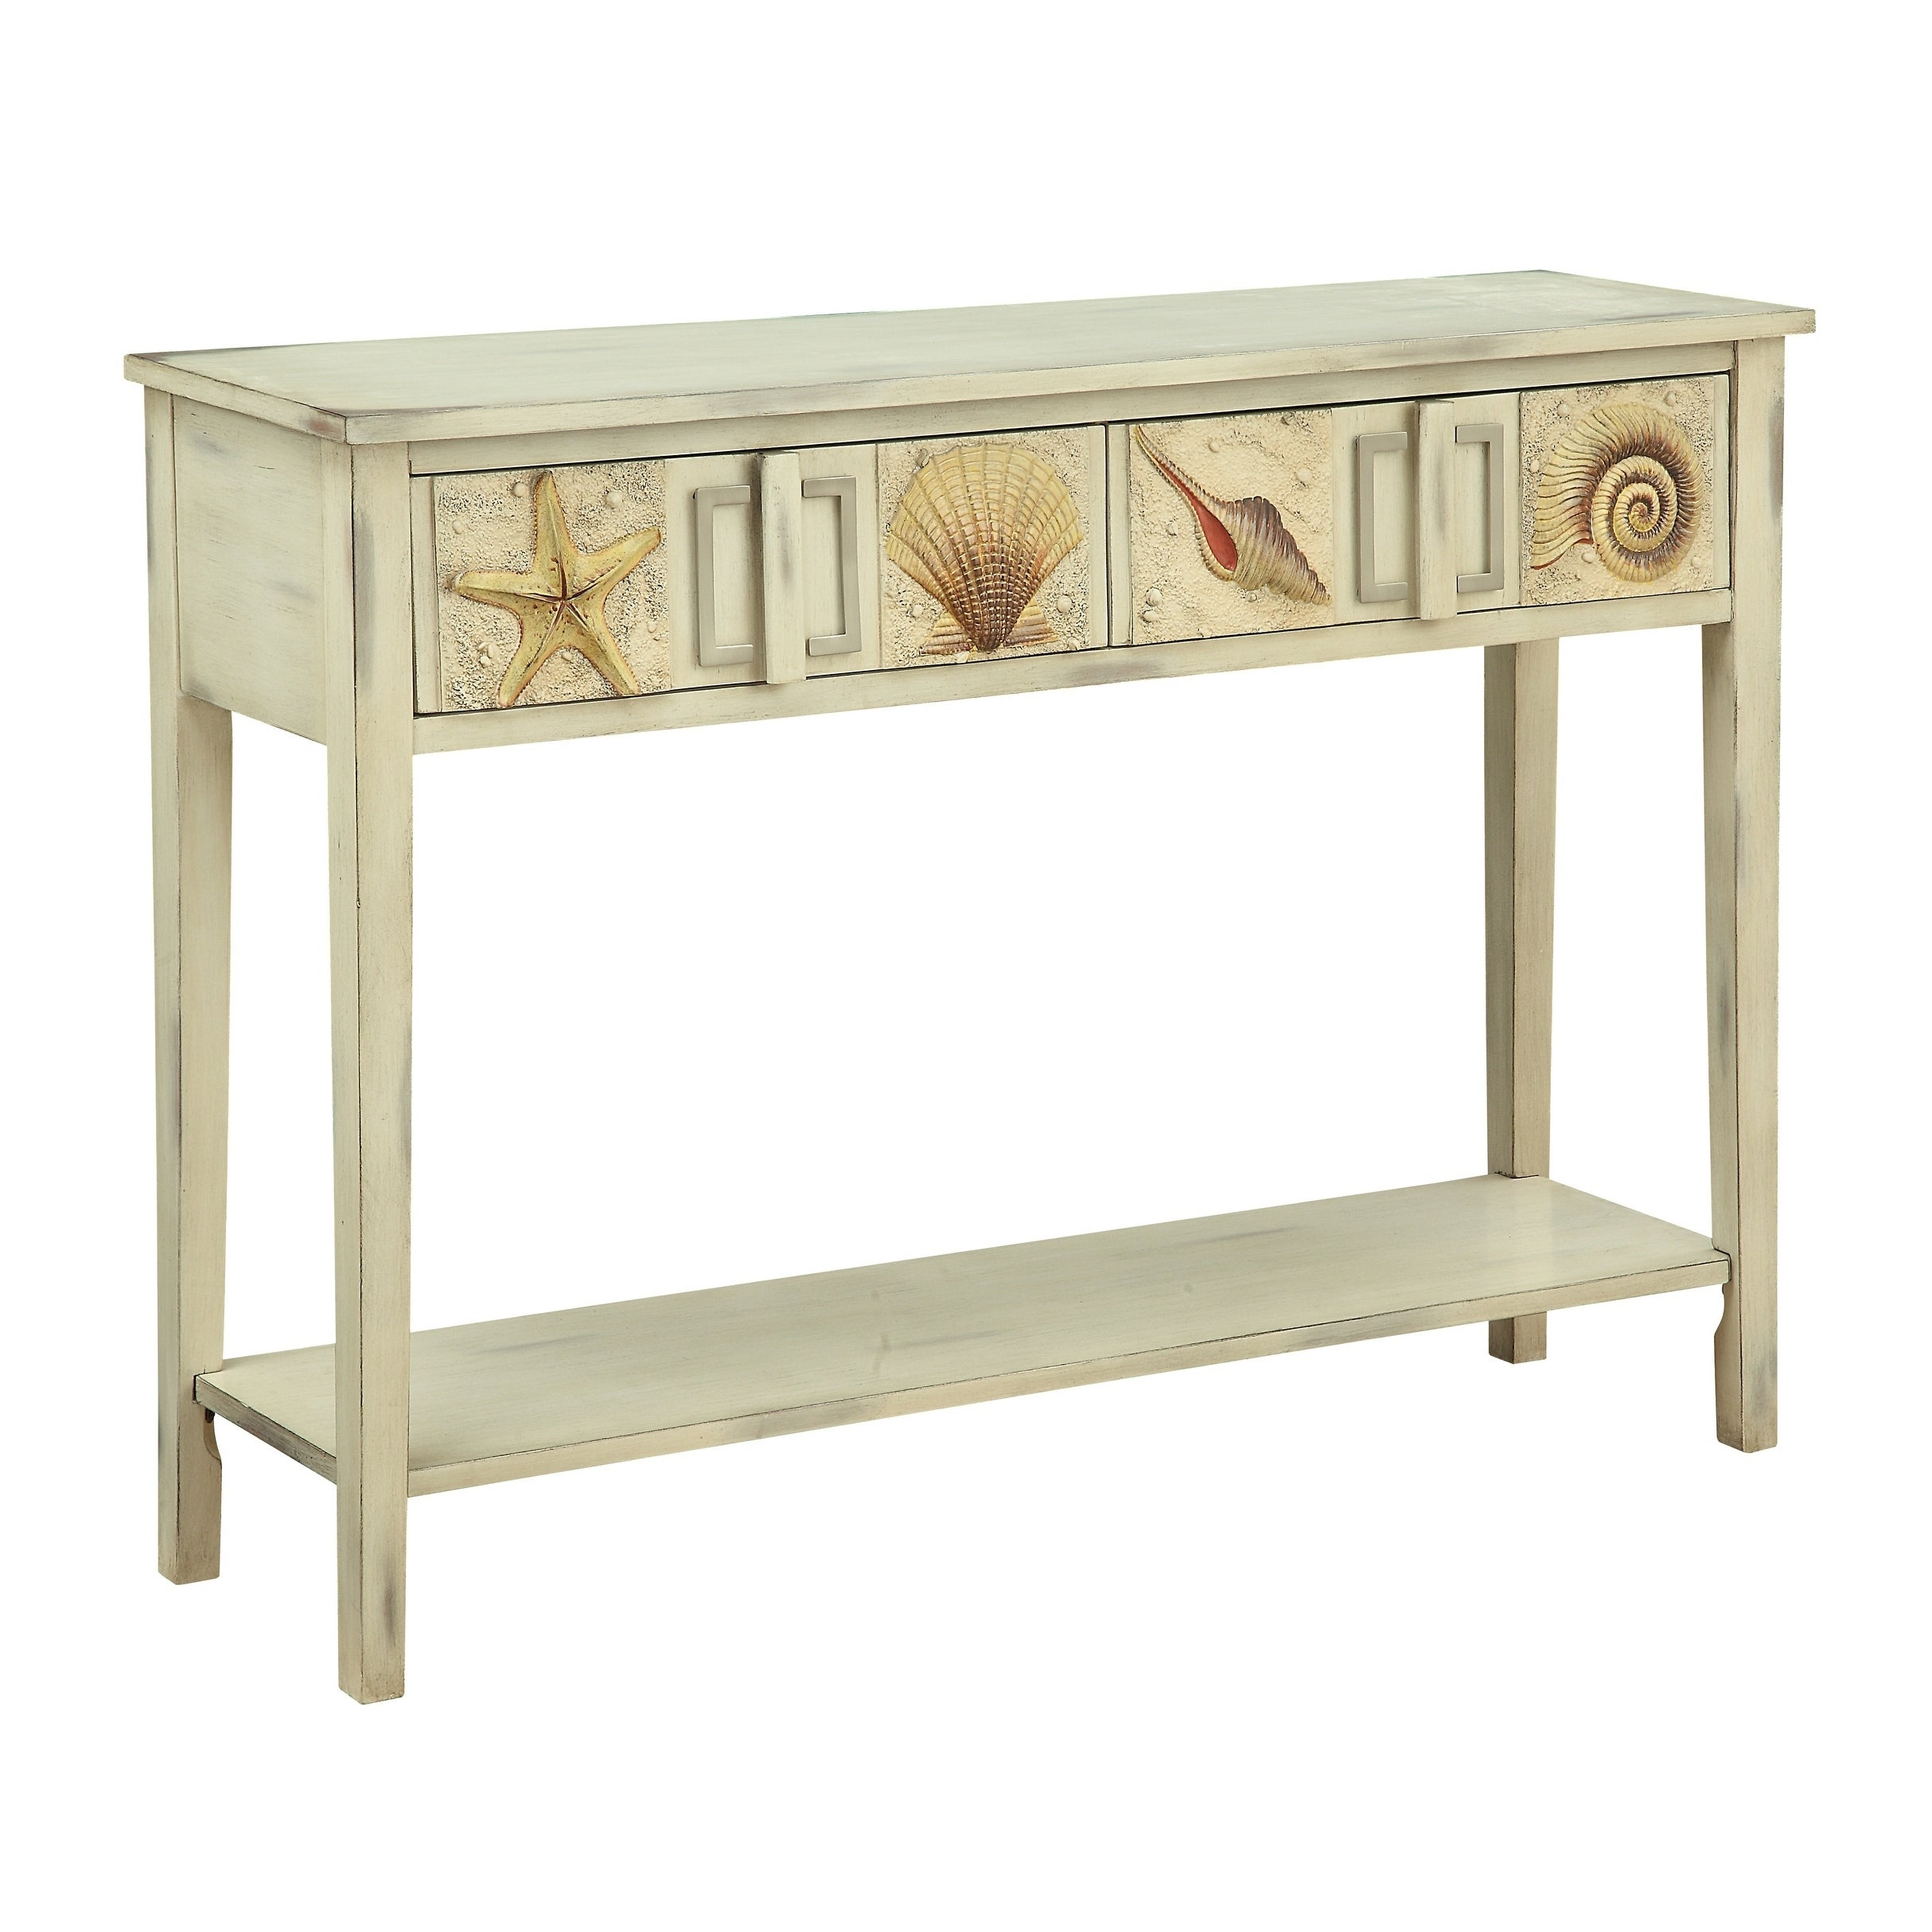 Treasure Trove Surfside Shoals Distressed Sand 2-drawer Console Table